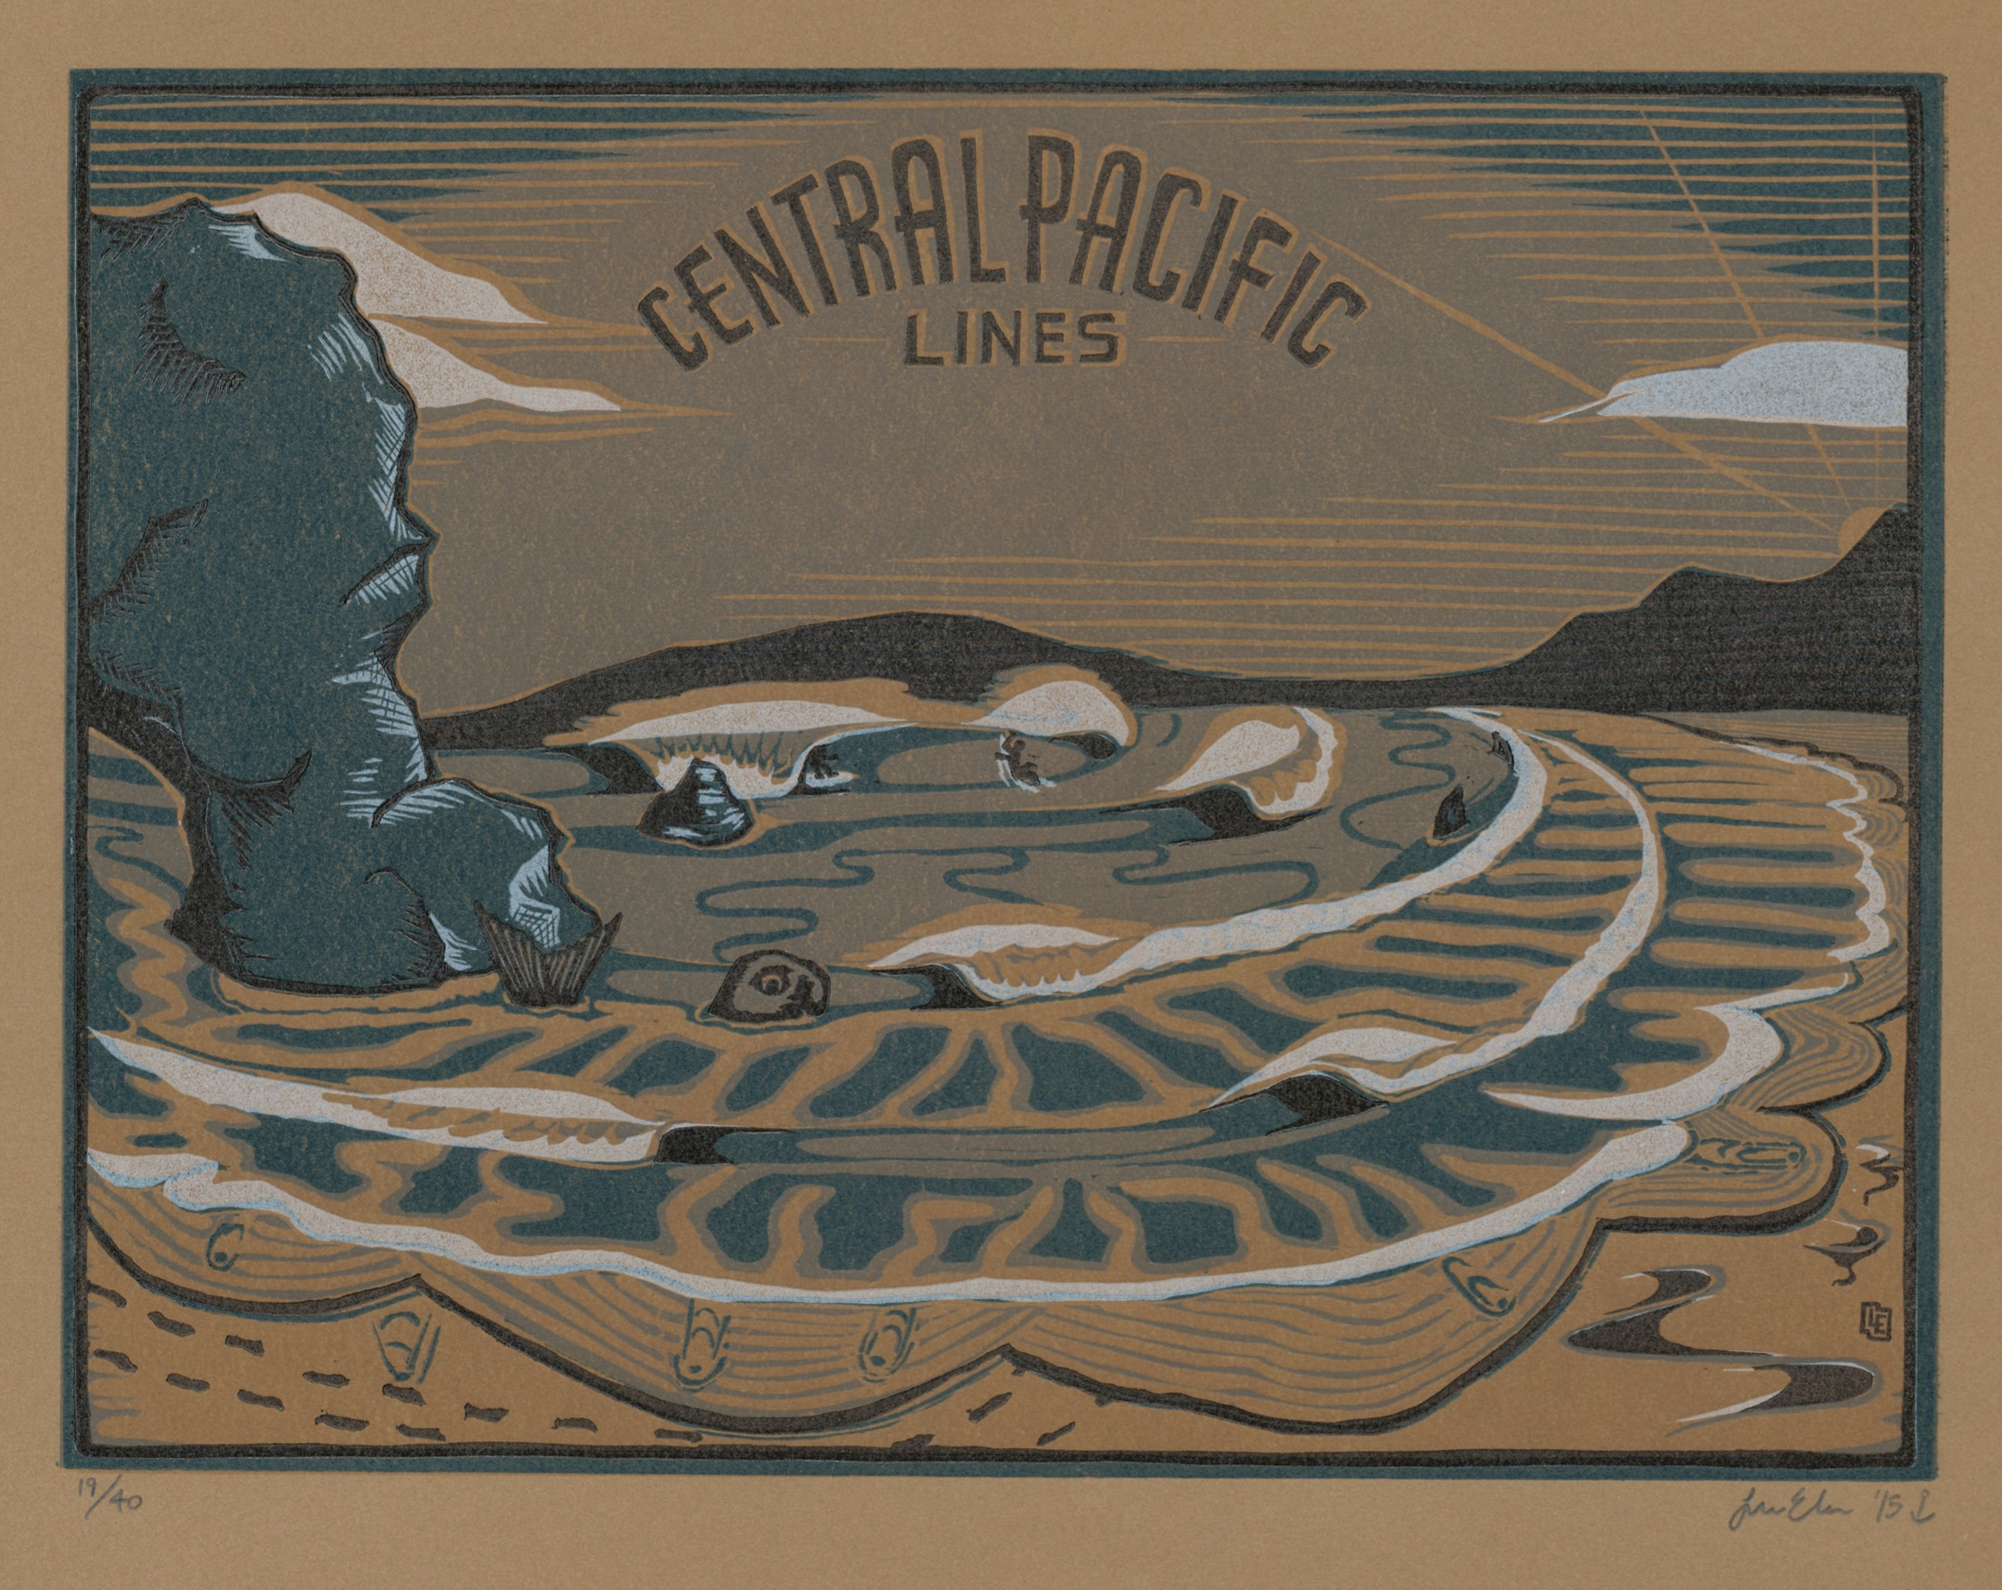 Central Pacific Lines copy.png